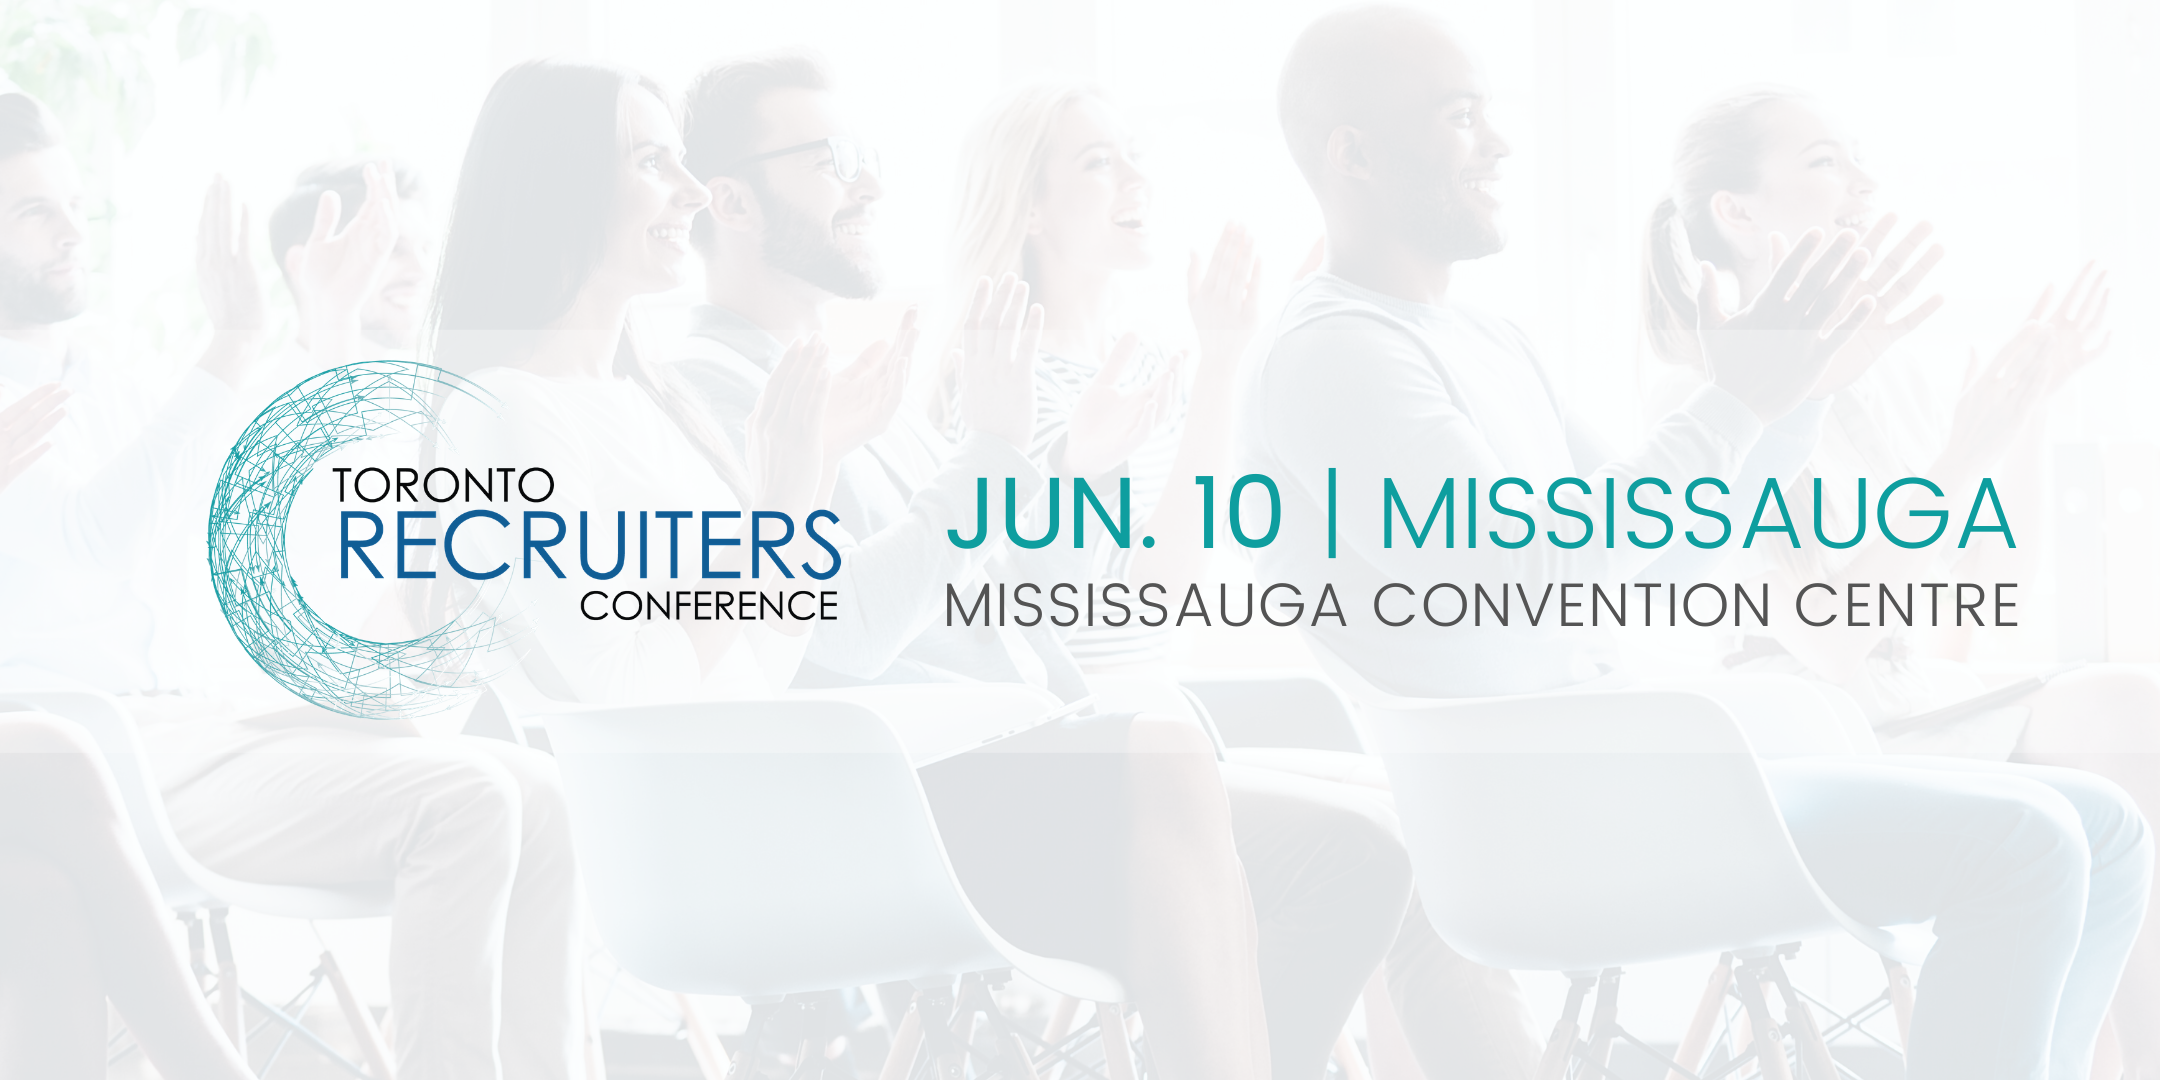 The Toronto Recruiters Conference & Tradeshow - June 10th, 2020